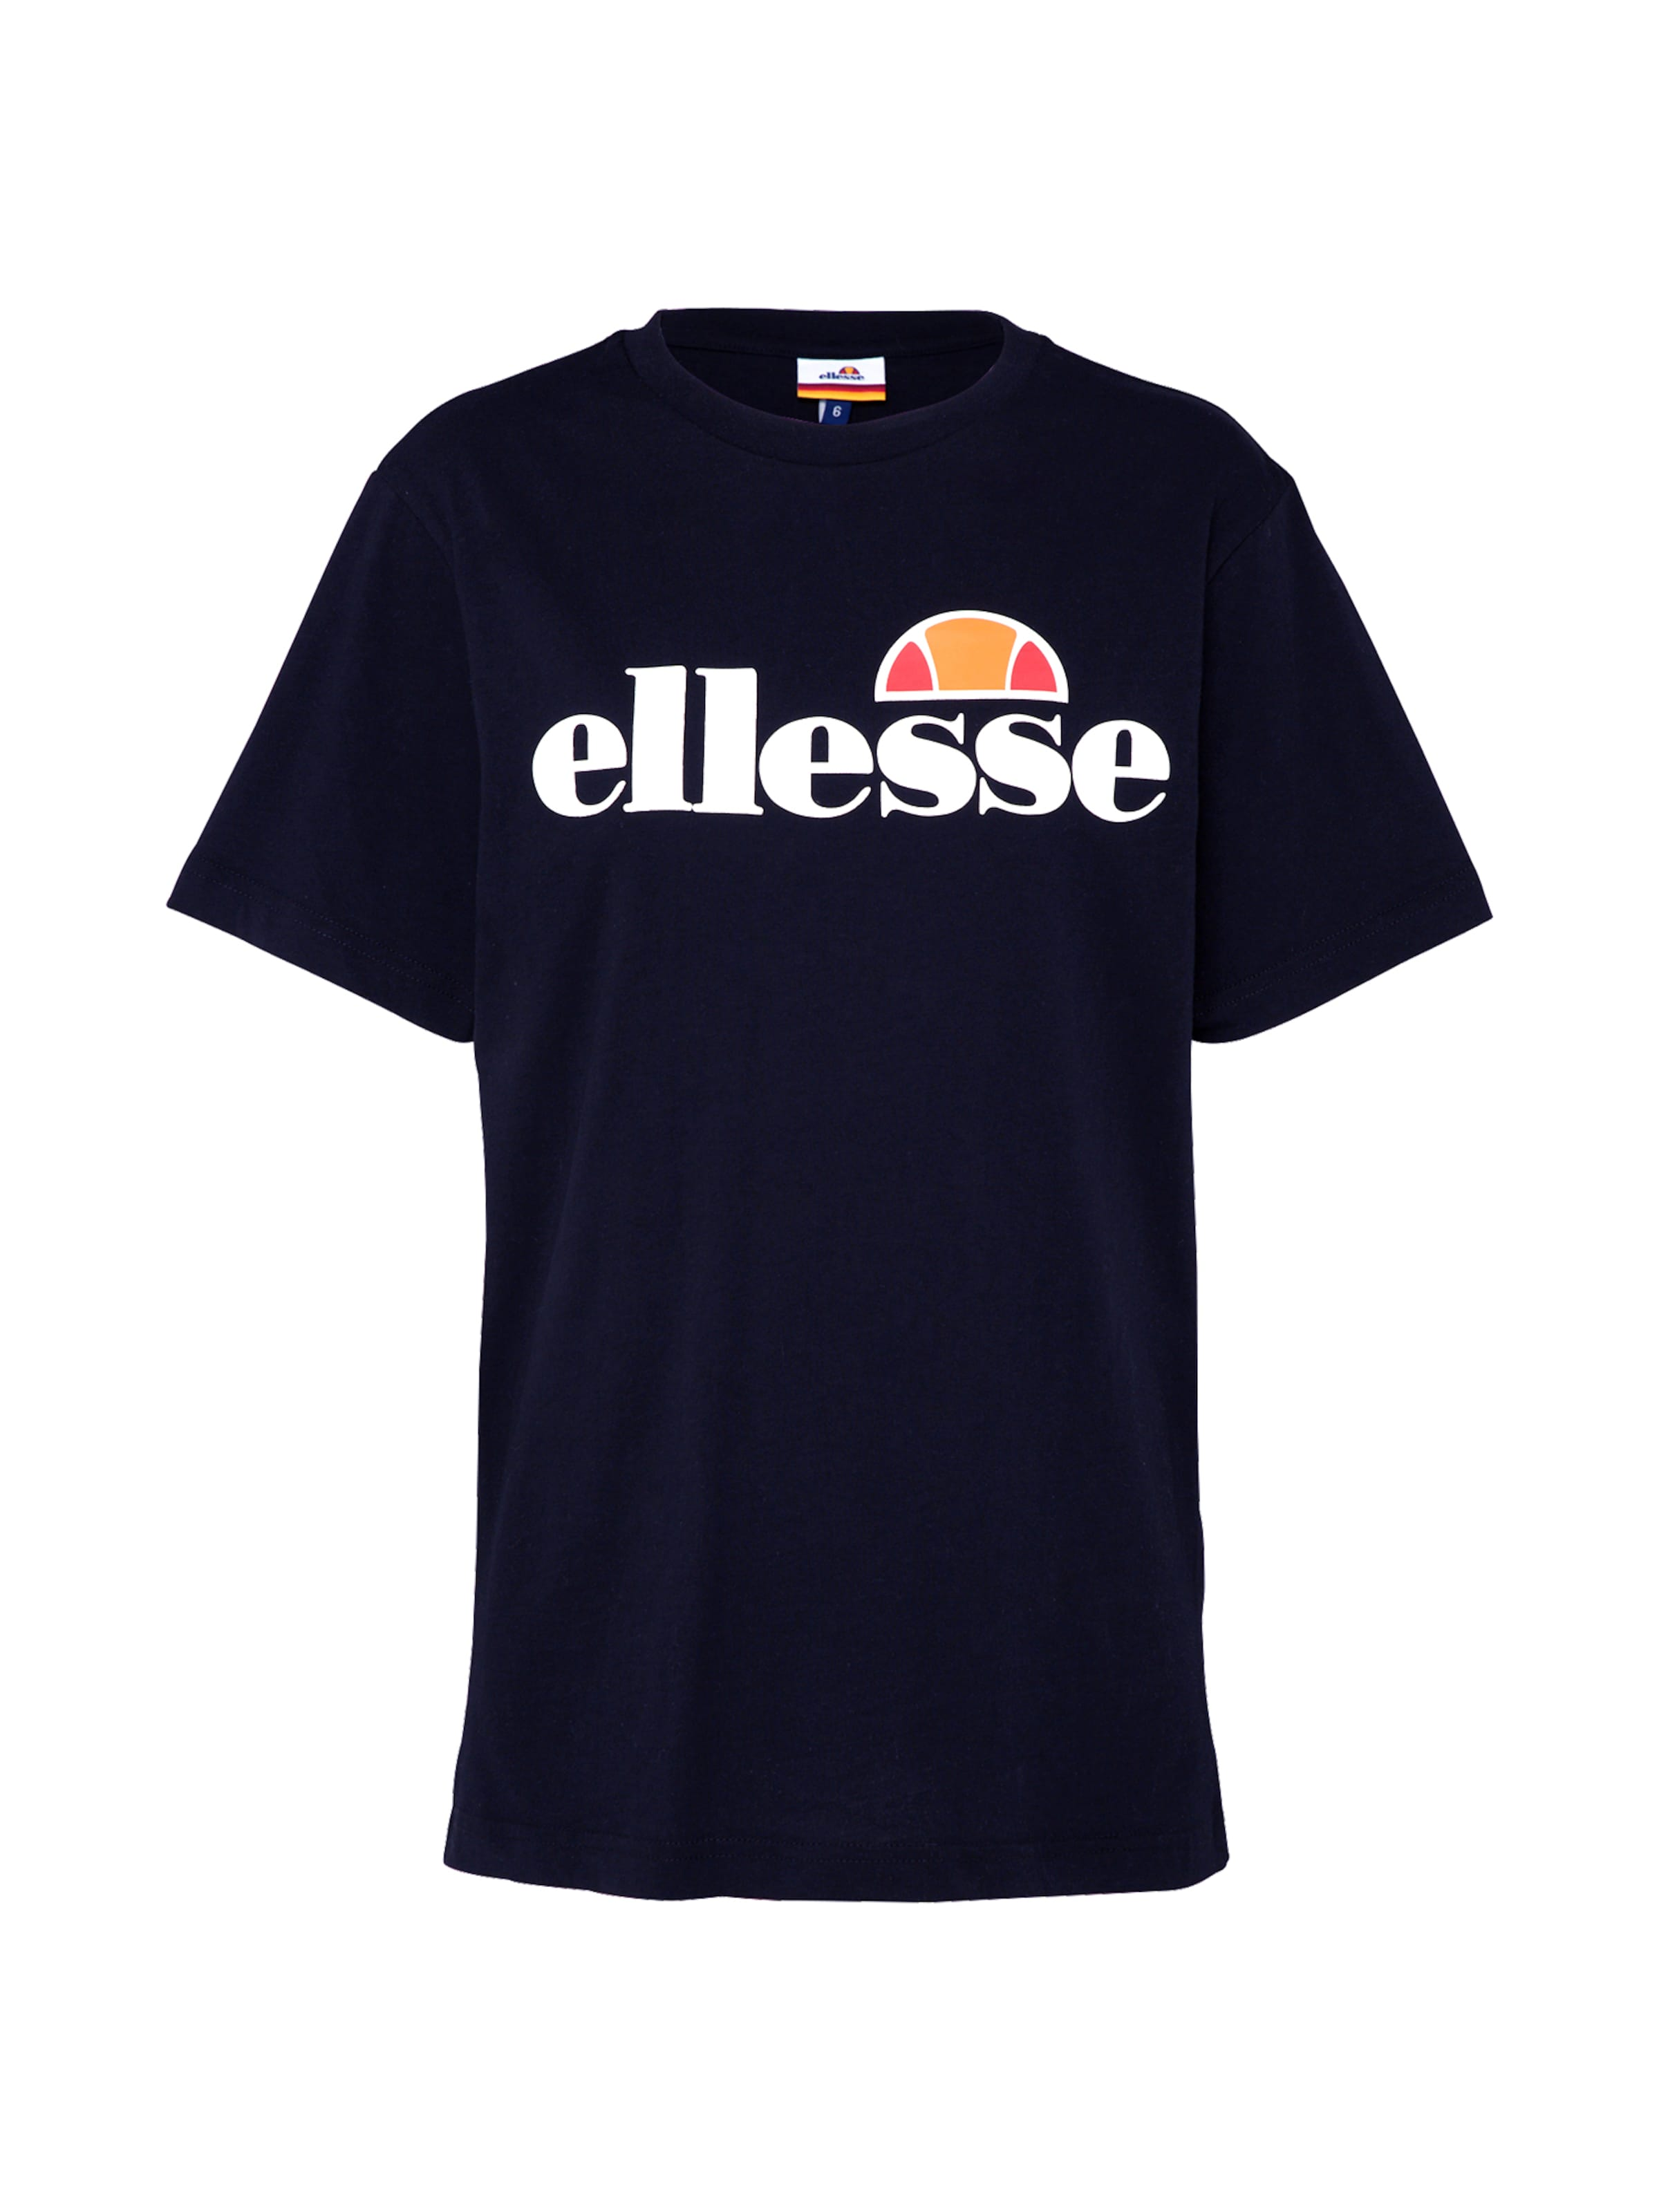 In Shirt Ellesse Navy 'albany' 5R4jAL